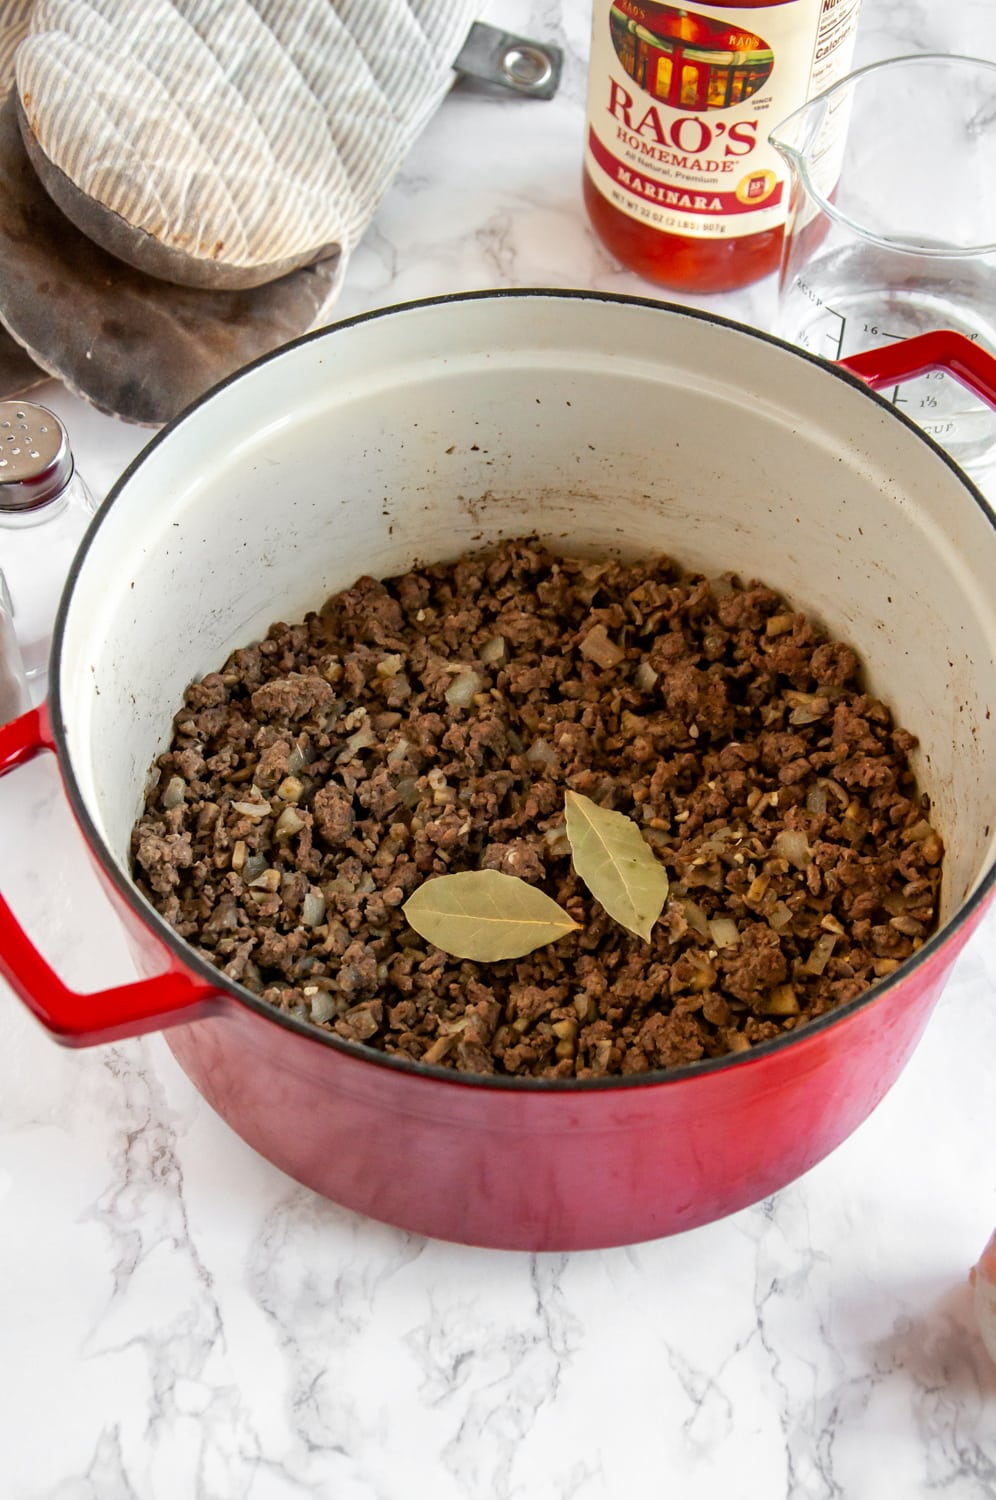 ground beef and other ingredients in a red cooking pot